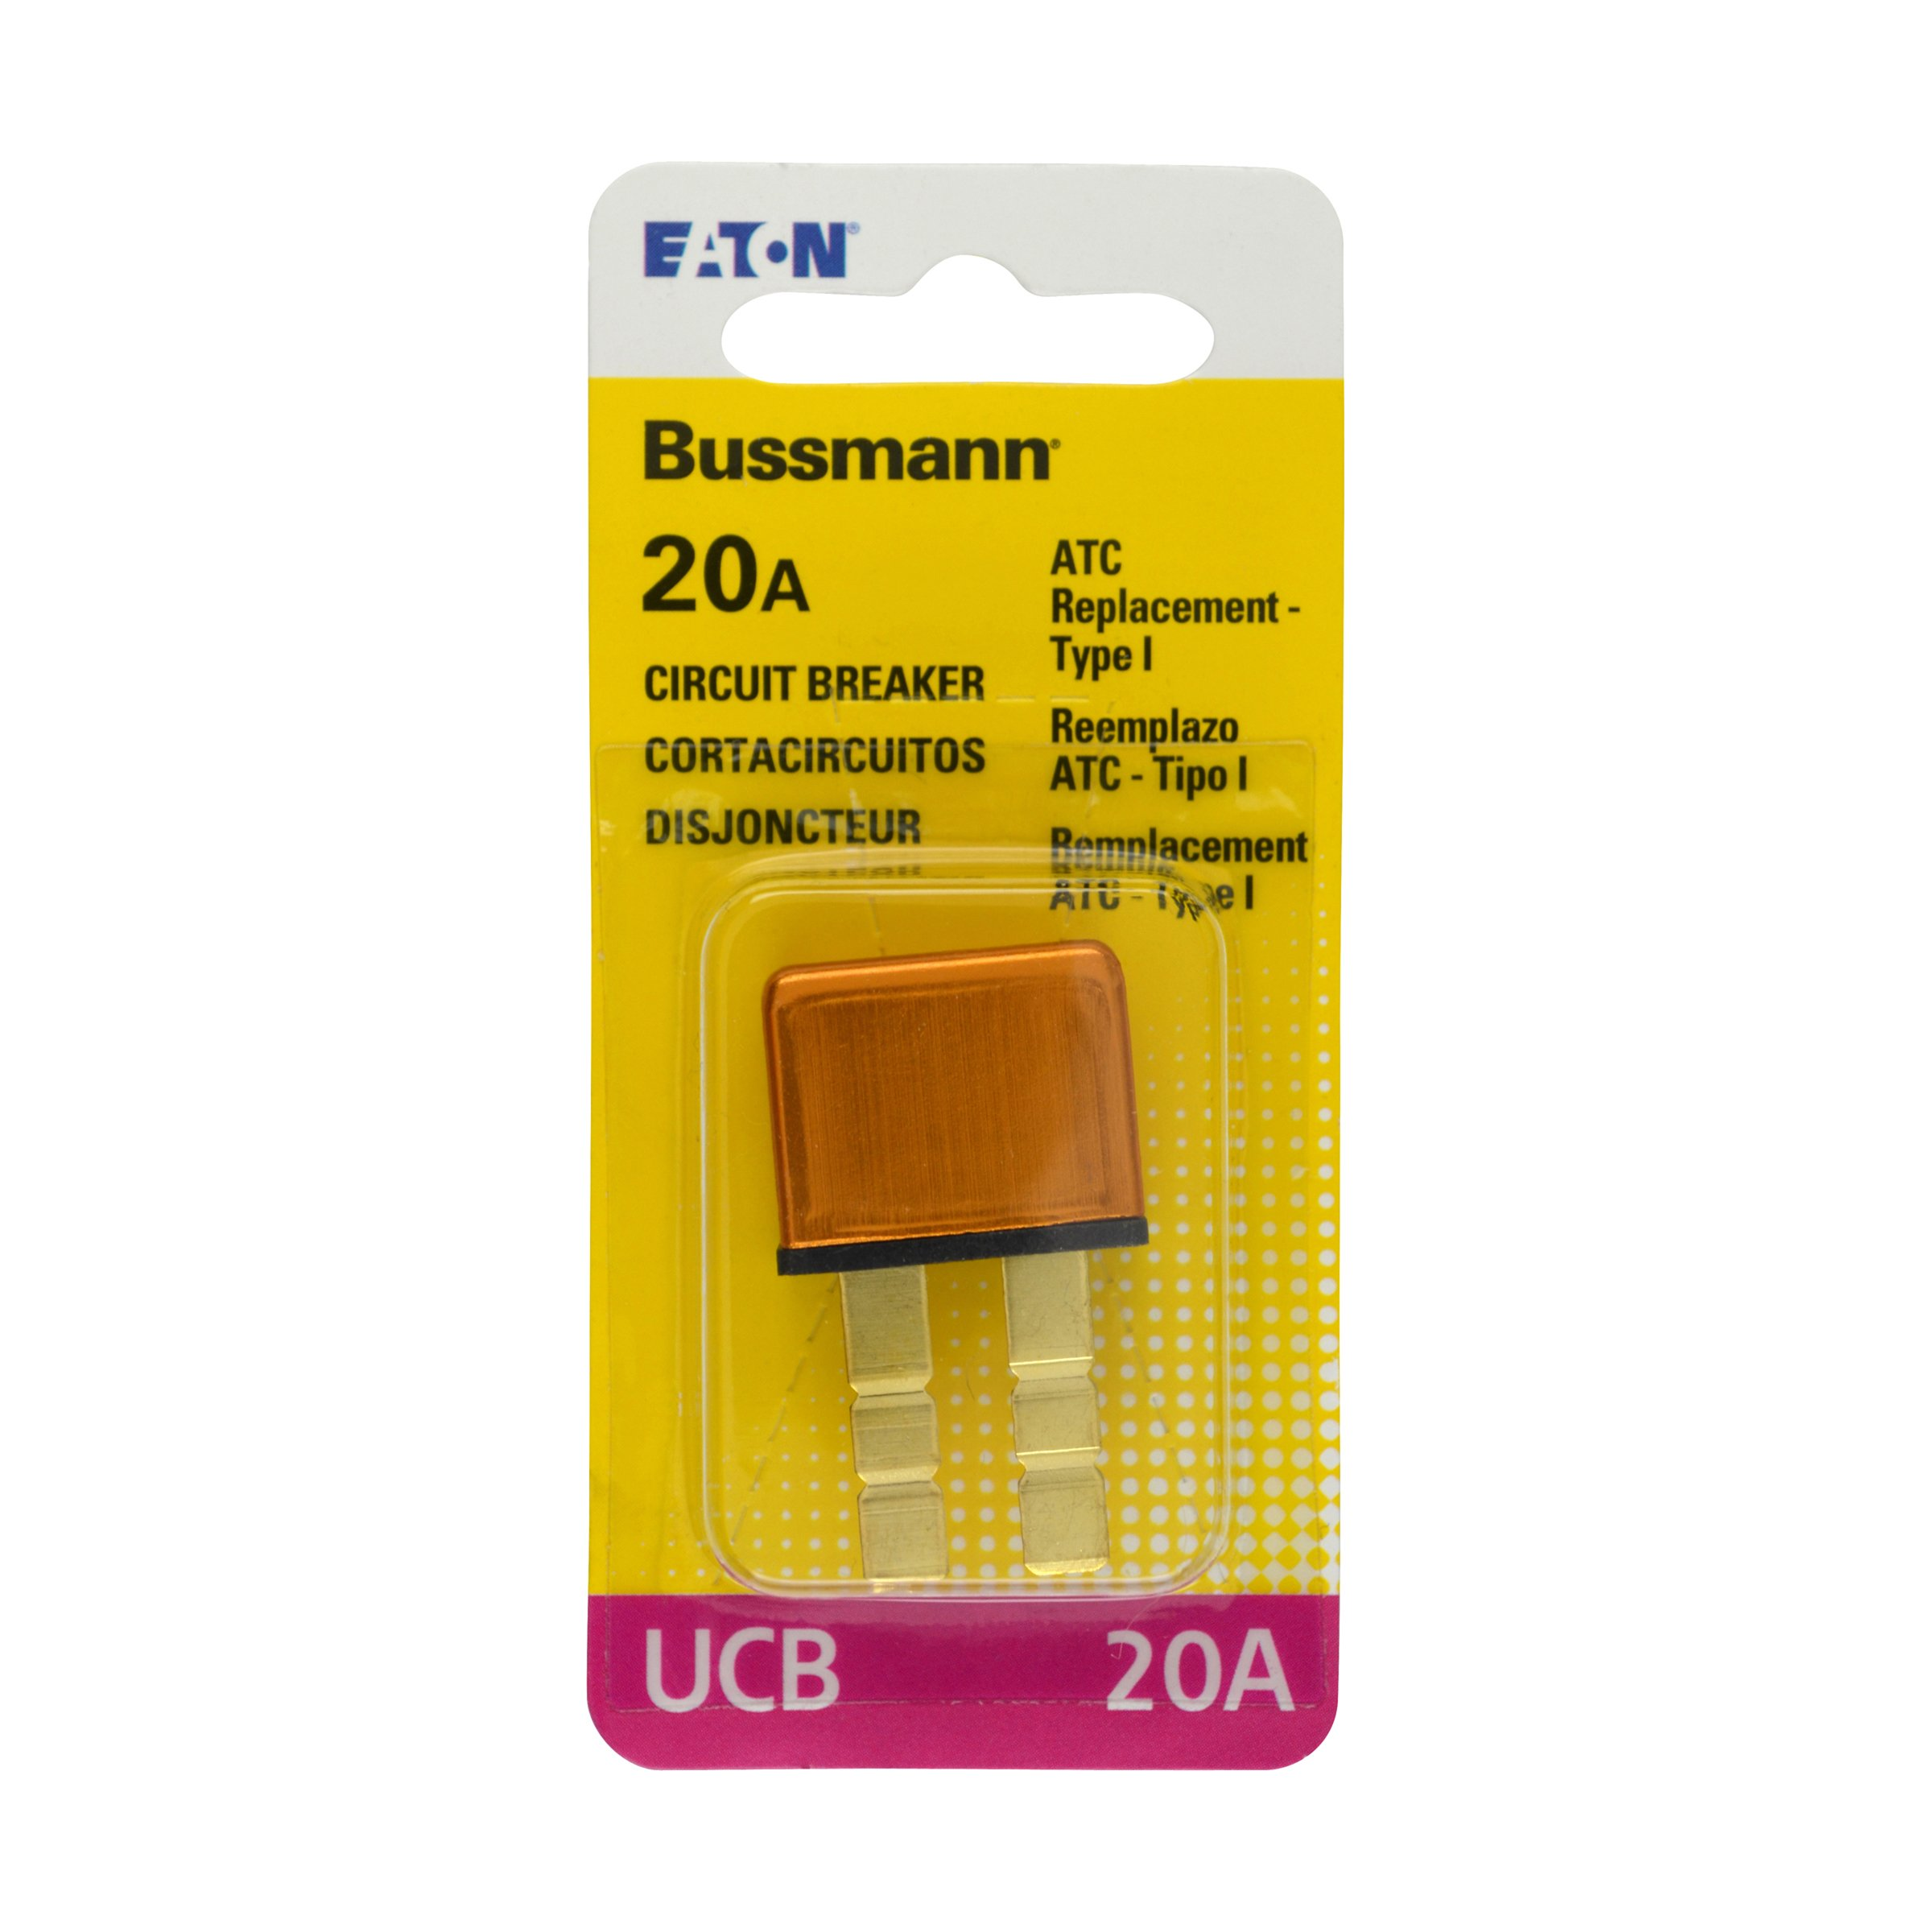 Best Rated In Automotive Replacement Circuit Breaker Switches Currents For Short Periods Of Time So Again A 50 Amp Fuse Or Bussmann Bp Ucb 20 Rp Type I Universal